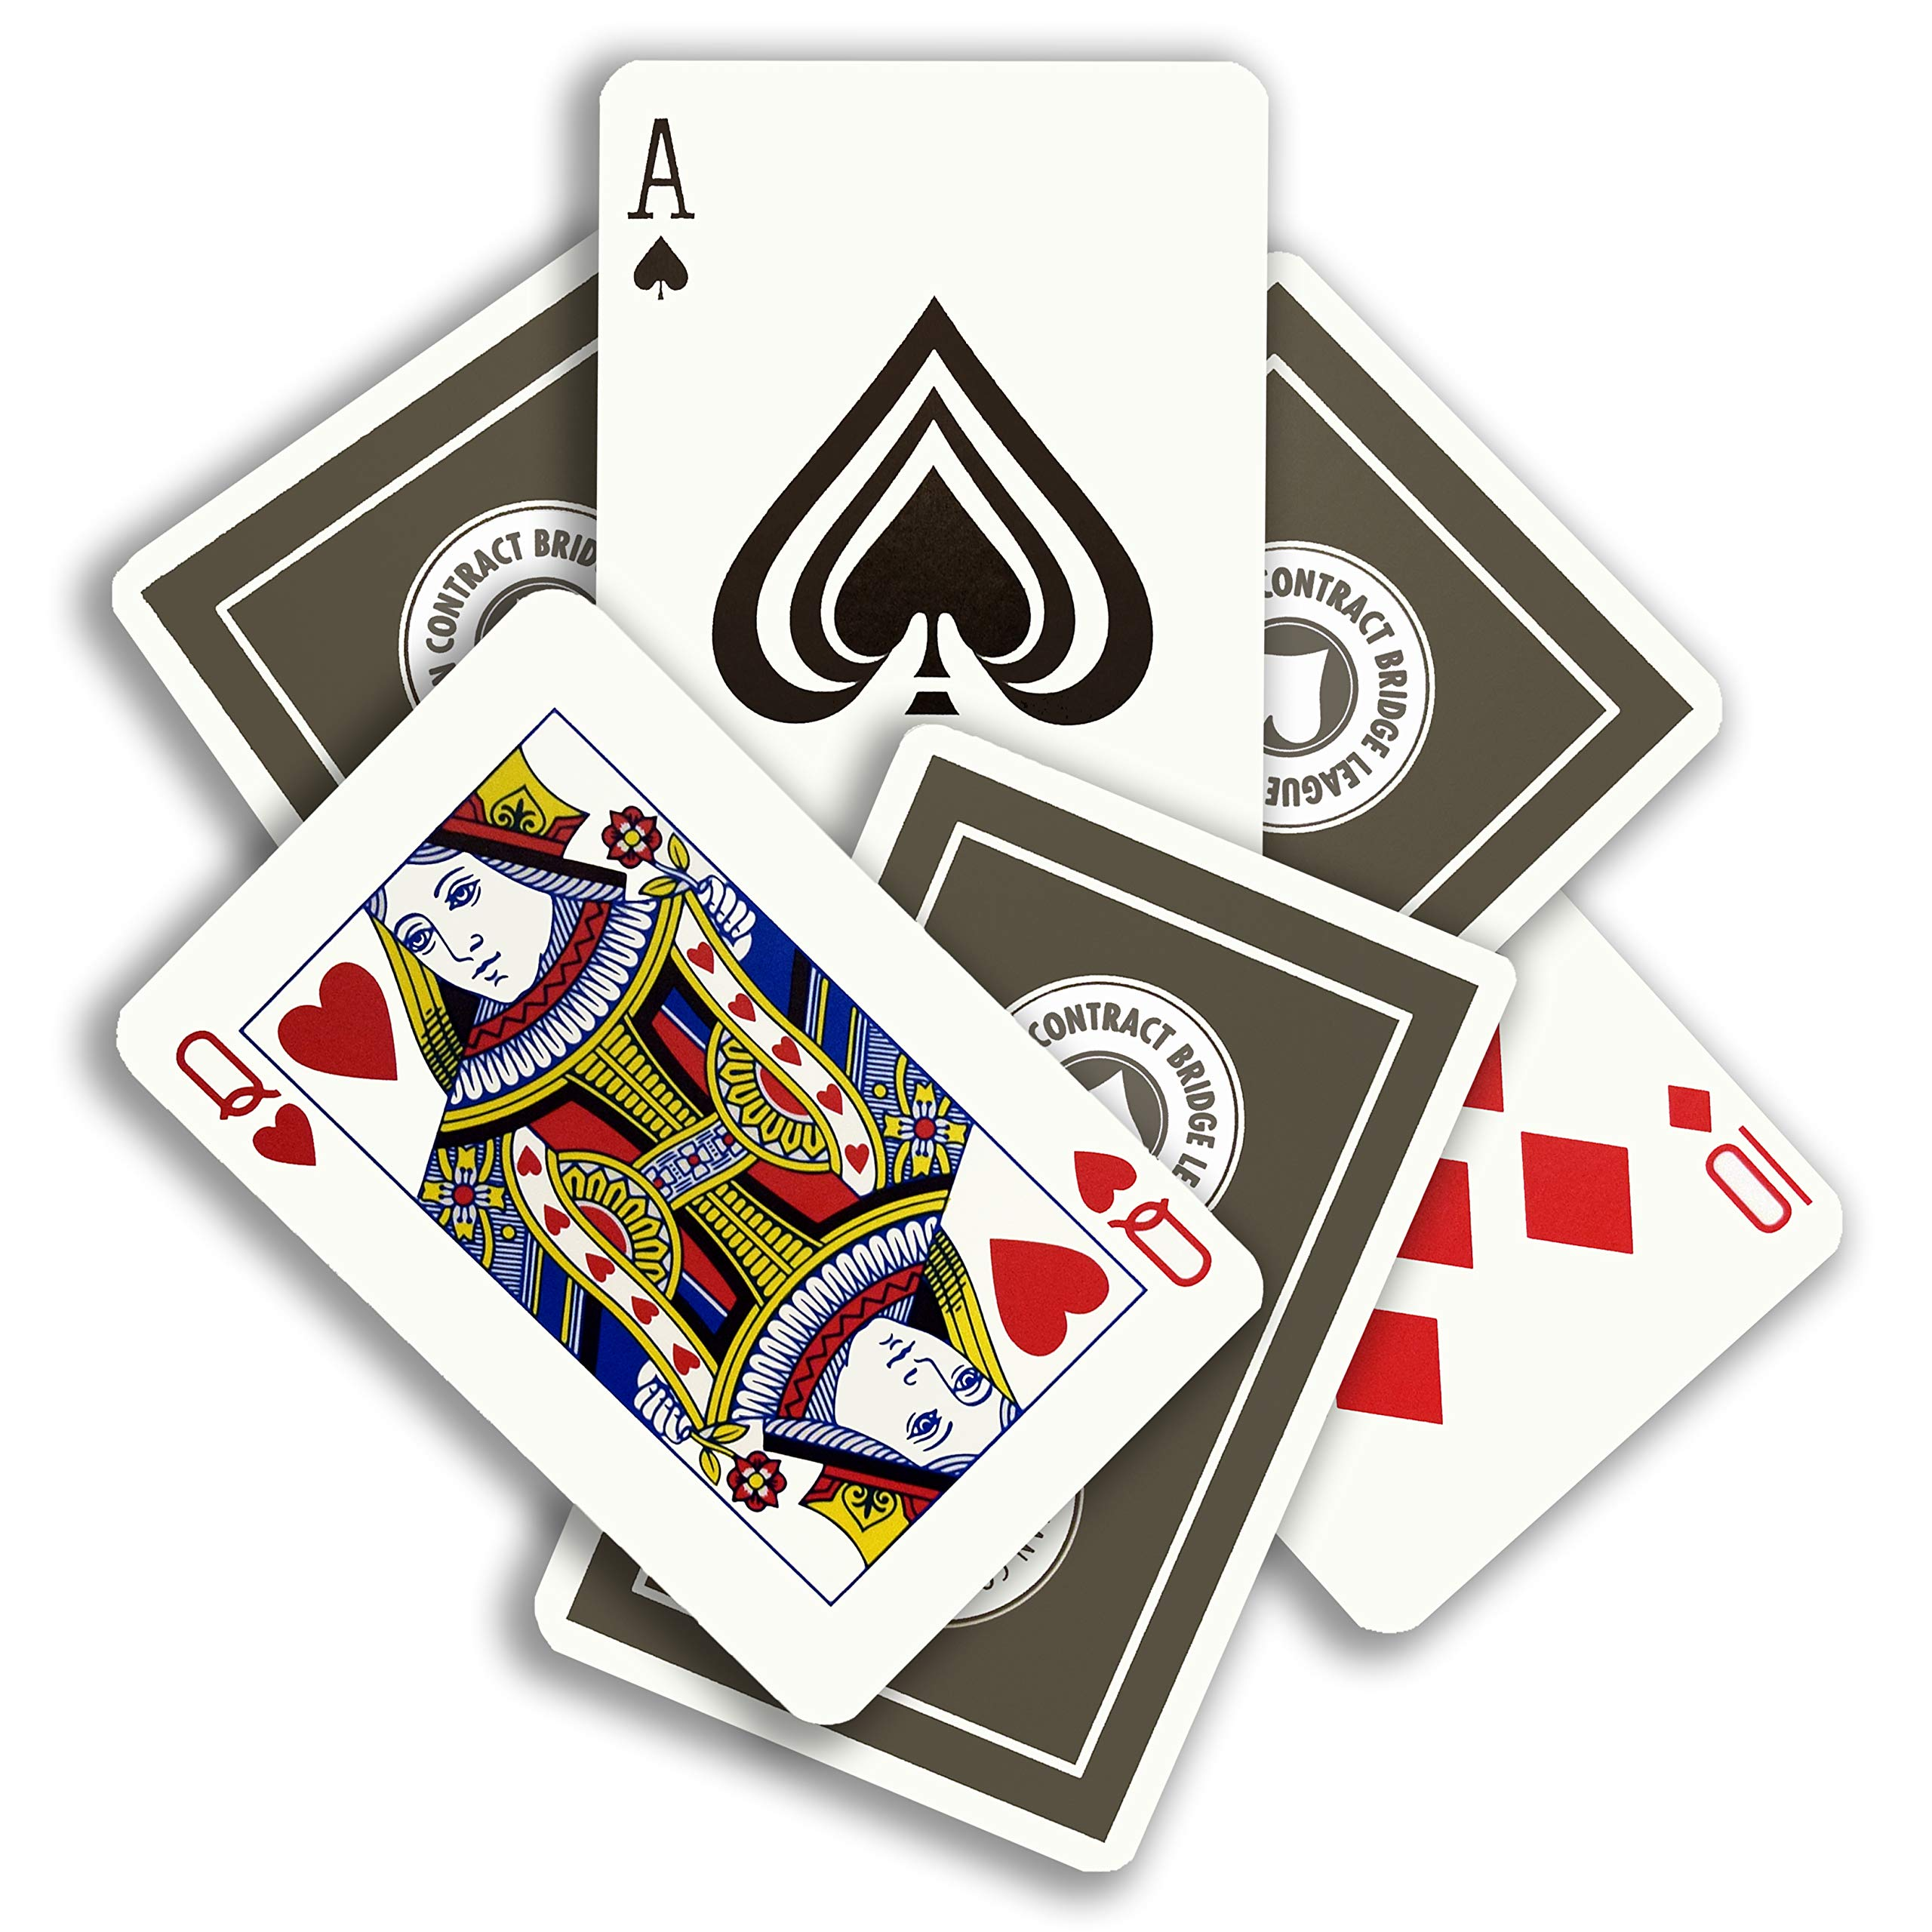 Baron Barclay ACBL (American Contract Bridge League) Playing Cards - 1 Dozen Decks - Bridge Sized - Plastic Coated by Baron Barclay (Image #2)